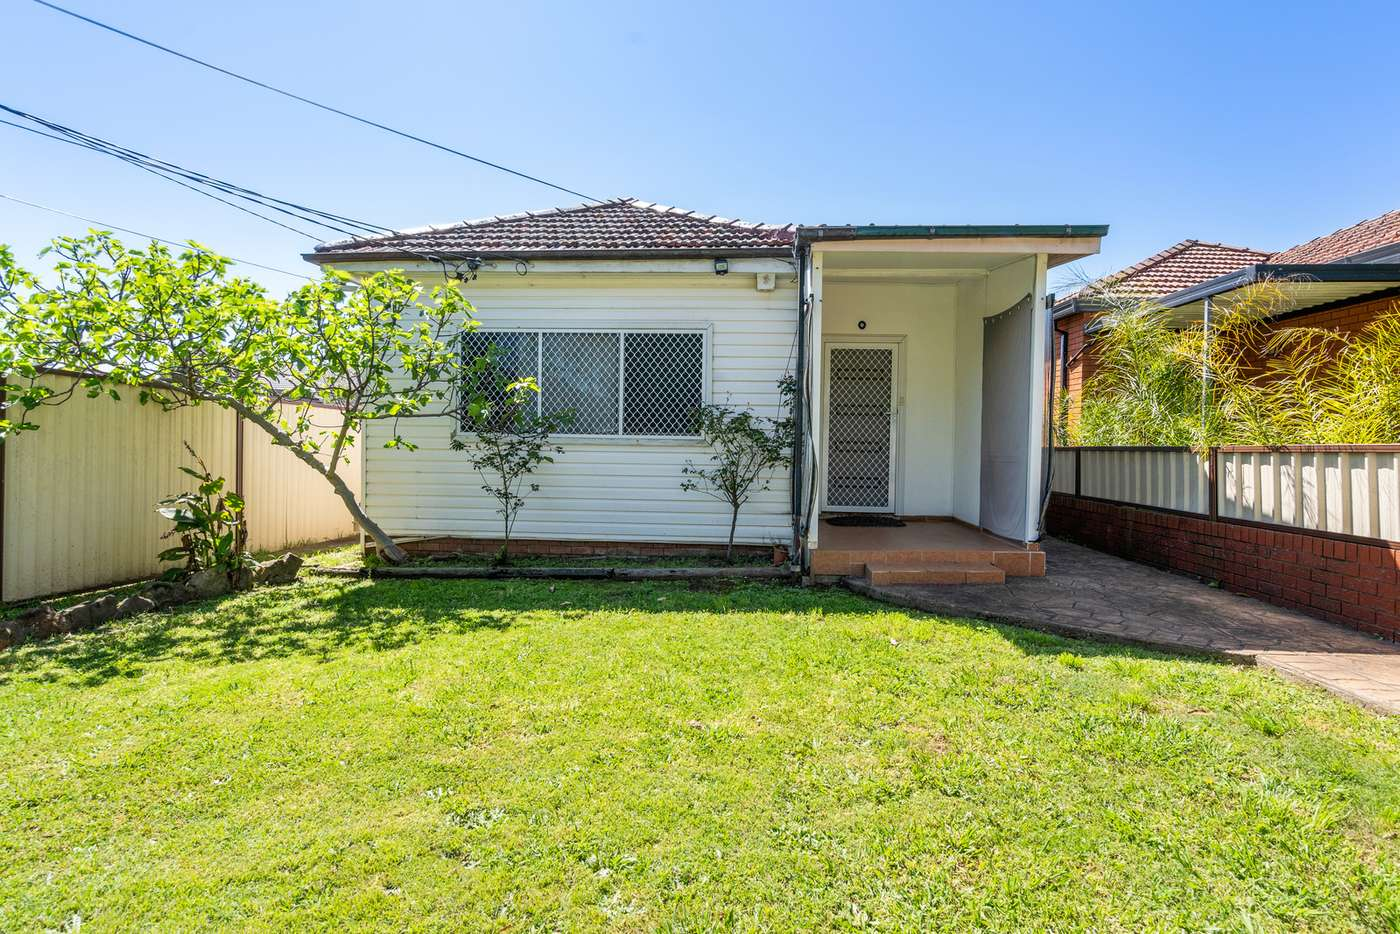 Main view of Homely house listing, 35 Langtry Avenue, Auburn NSW 2144